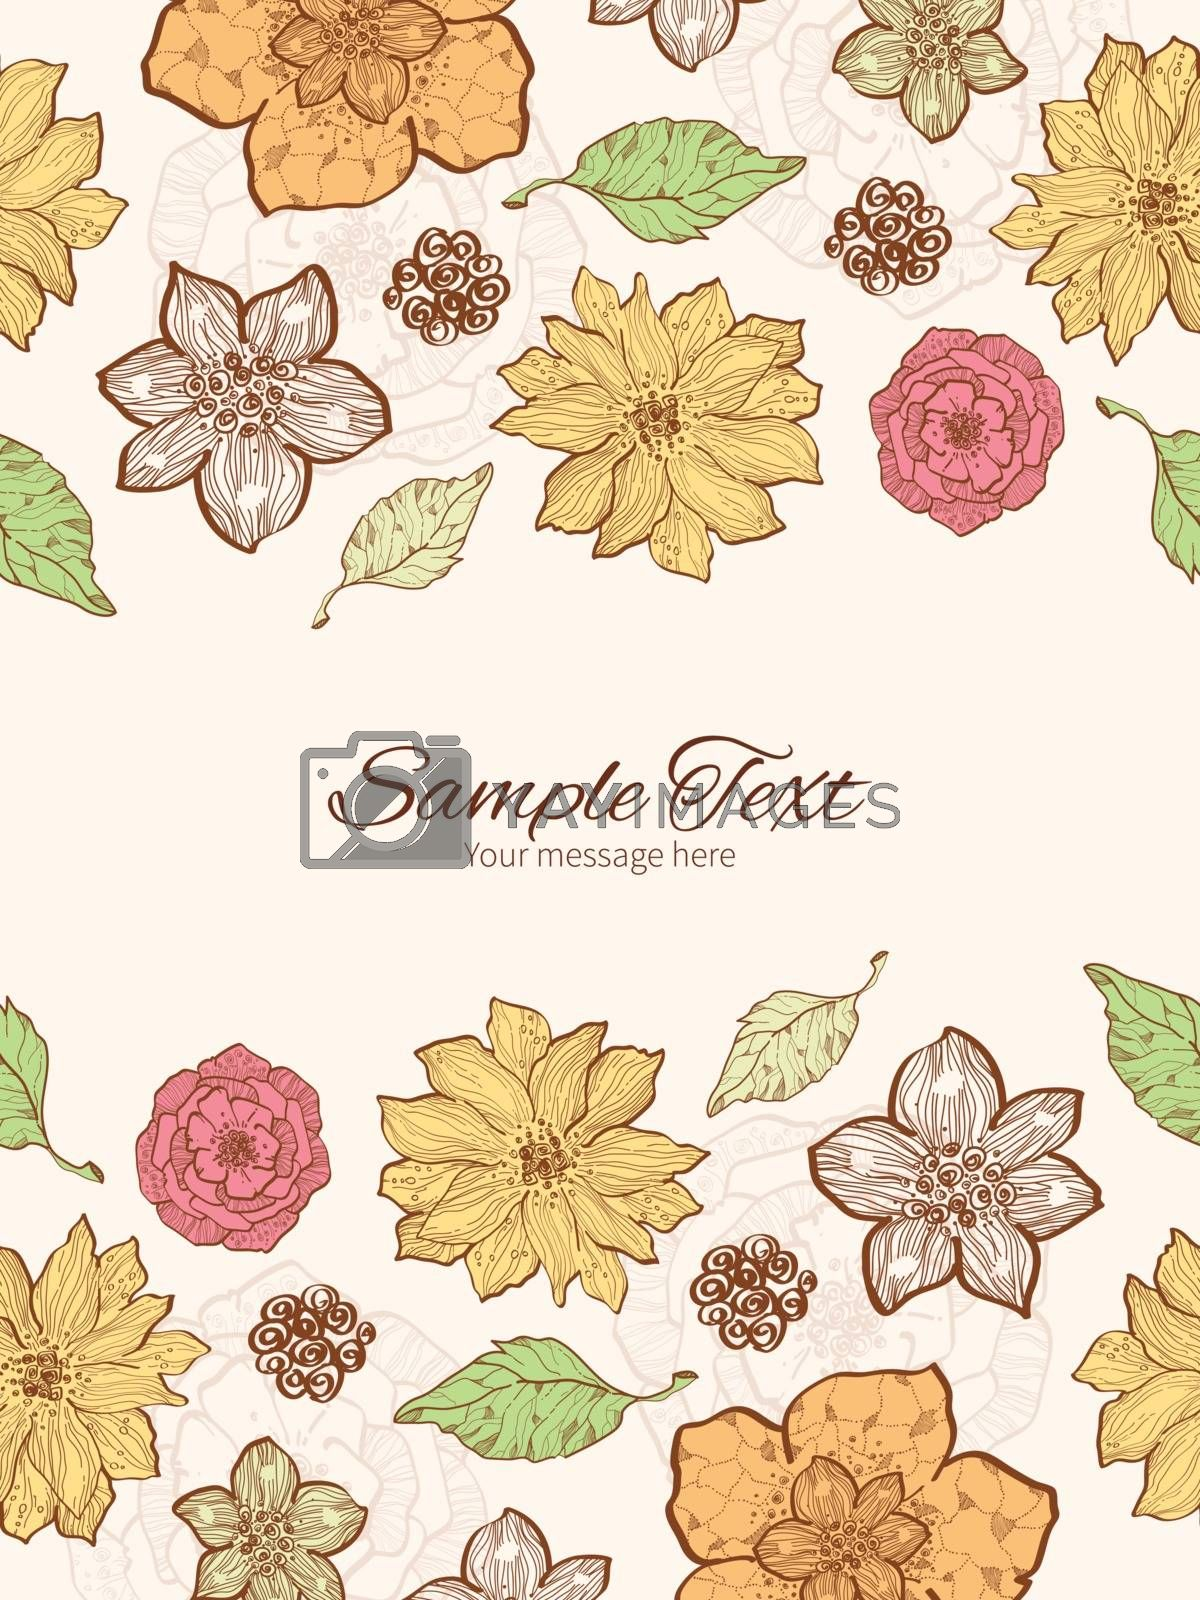 Vector warm fall lineart flowers vertical double borders frame invitation template graphic design